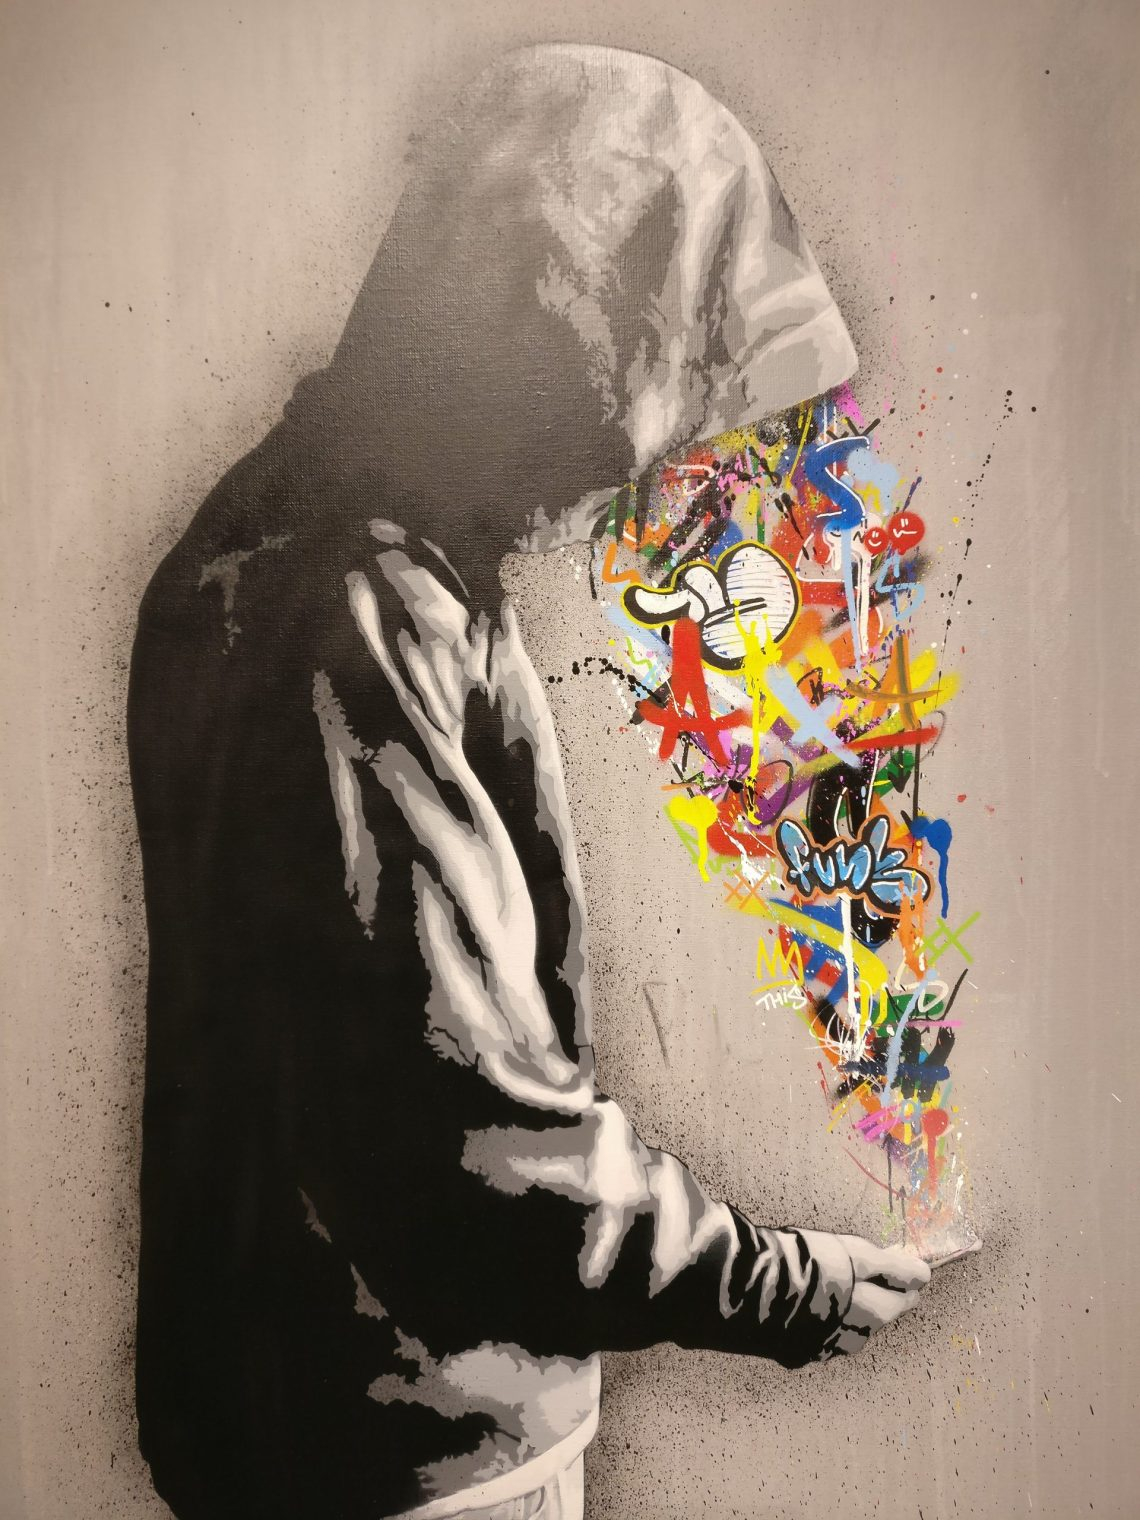 Painting by Martin Whatson at the Social Paradox exhibition at the Stolen Space Gallery